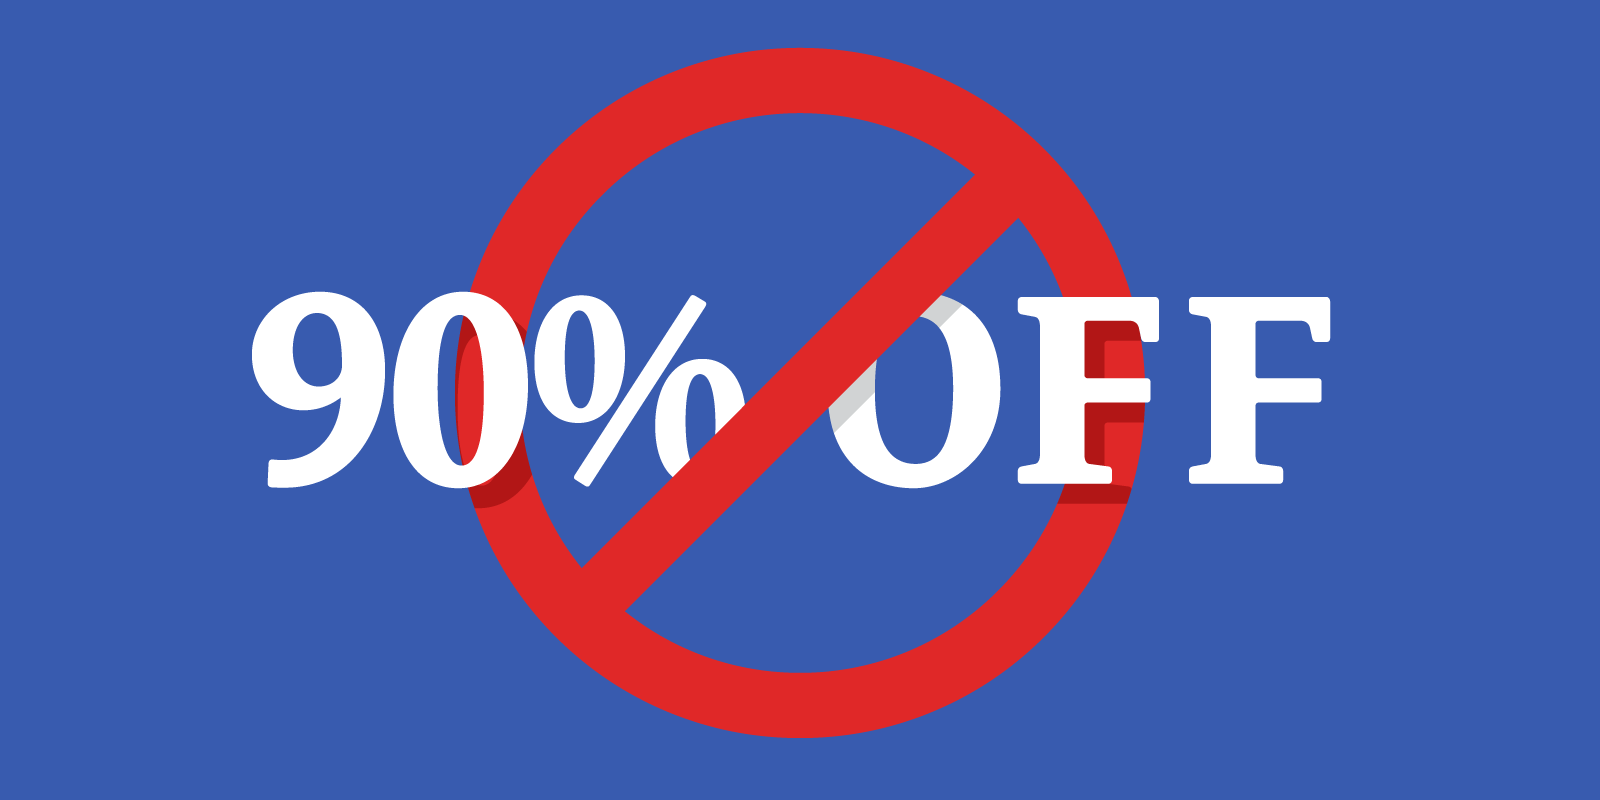 Practical Ways to Promote Without Using Discounts